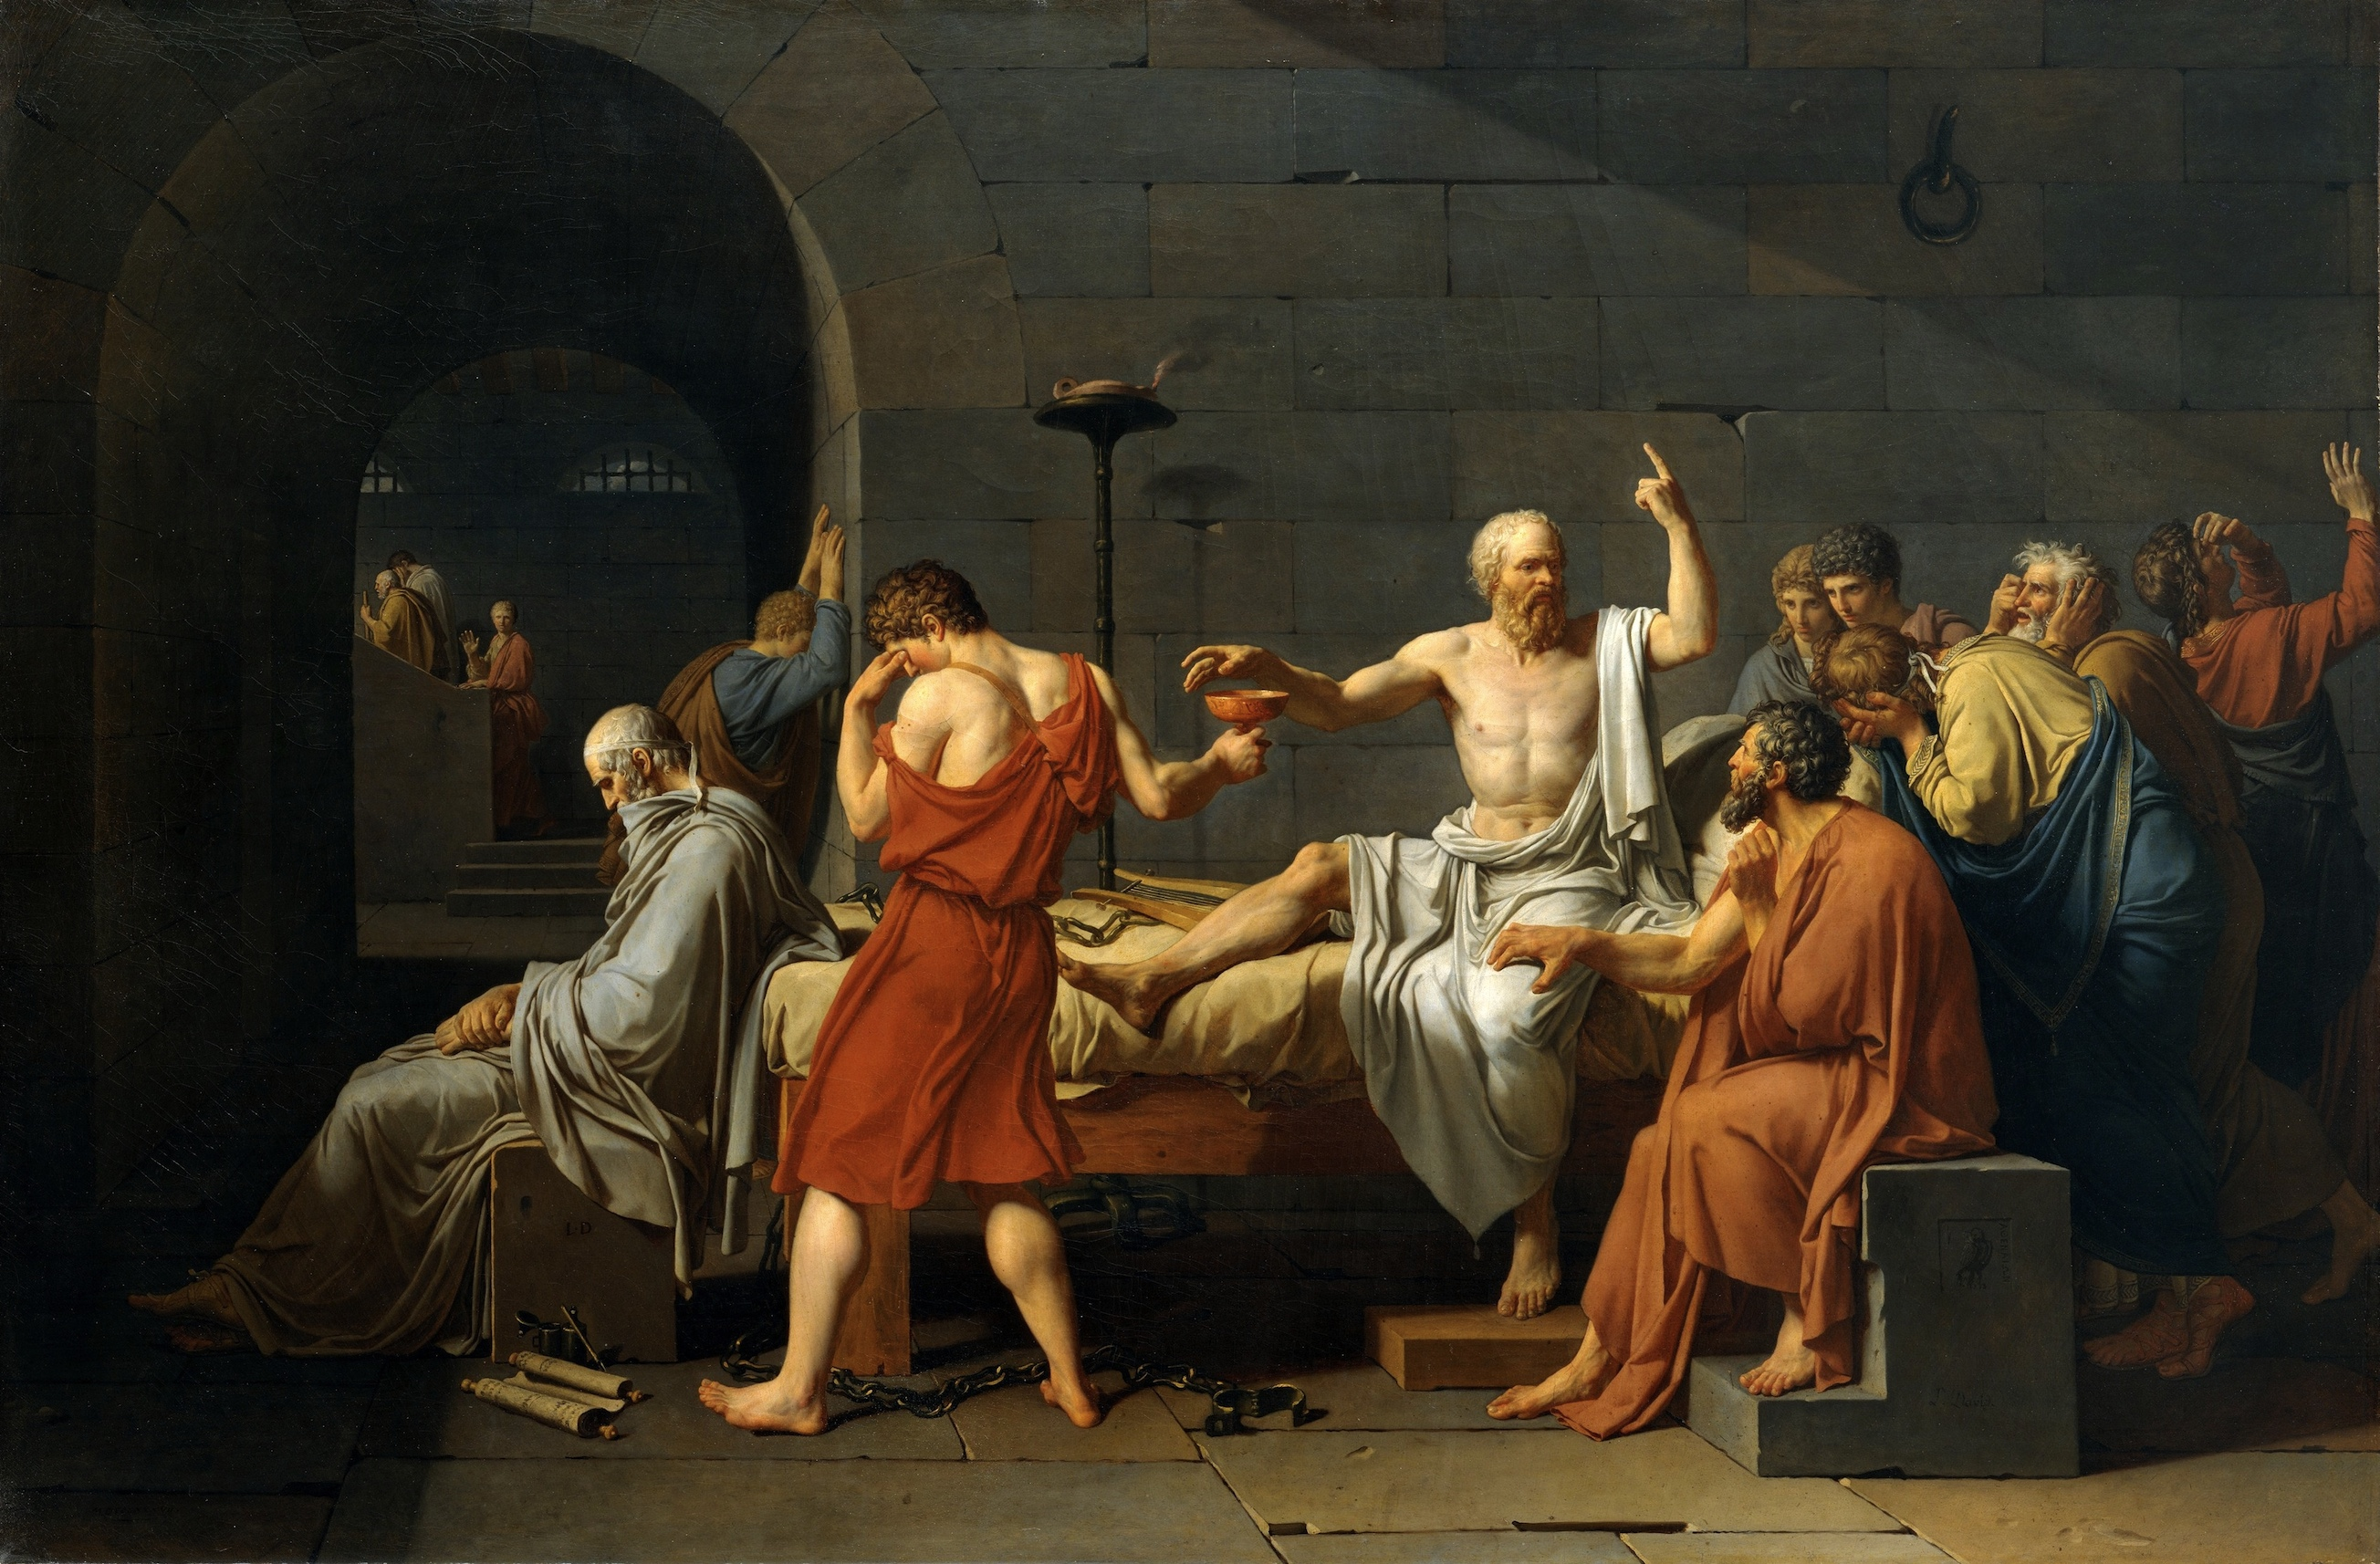 Jacques-Louis David's The Death of Socrates - Small